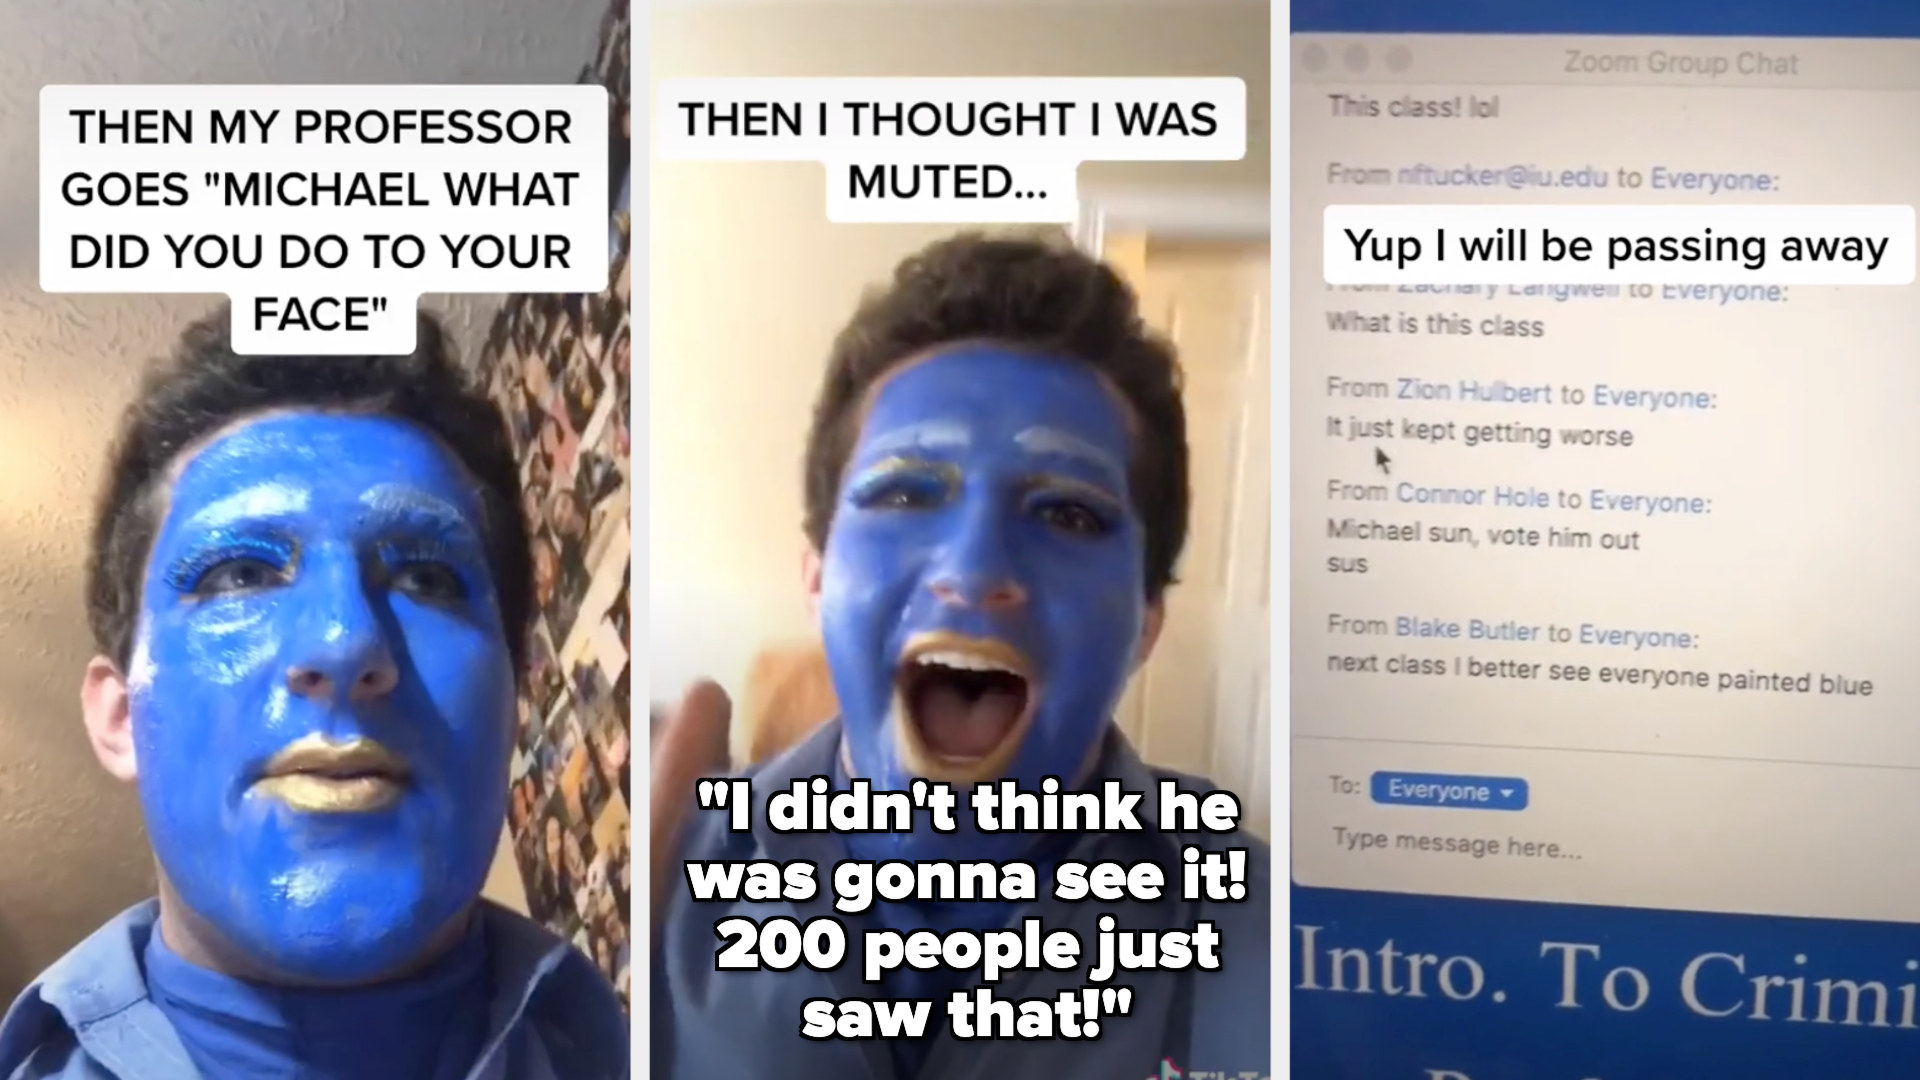 Michael with paint on face saying his professor asked about it, then shouting about how he didn't think he'd be on camera while unmuted, then a picture of people laughing about it in the chat